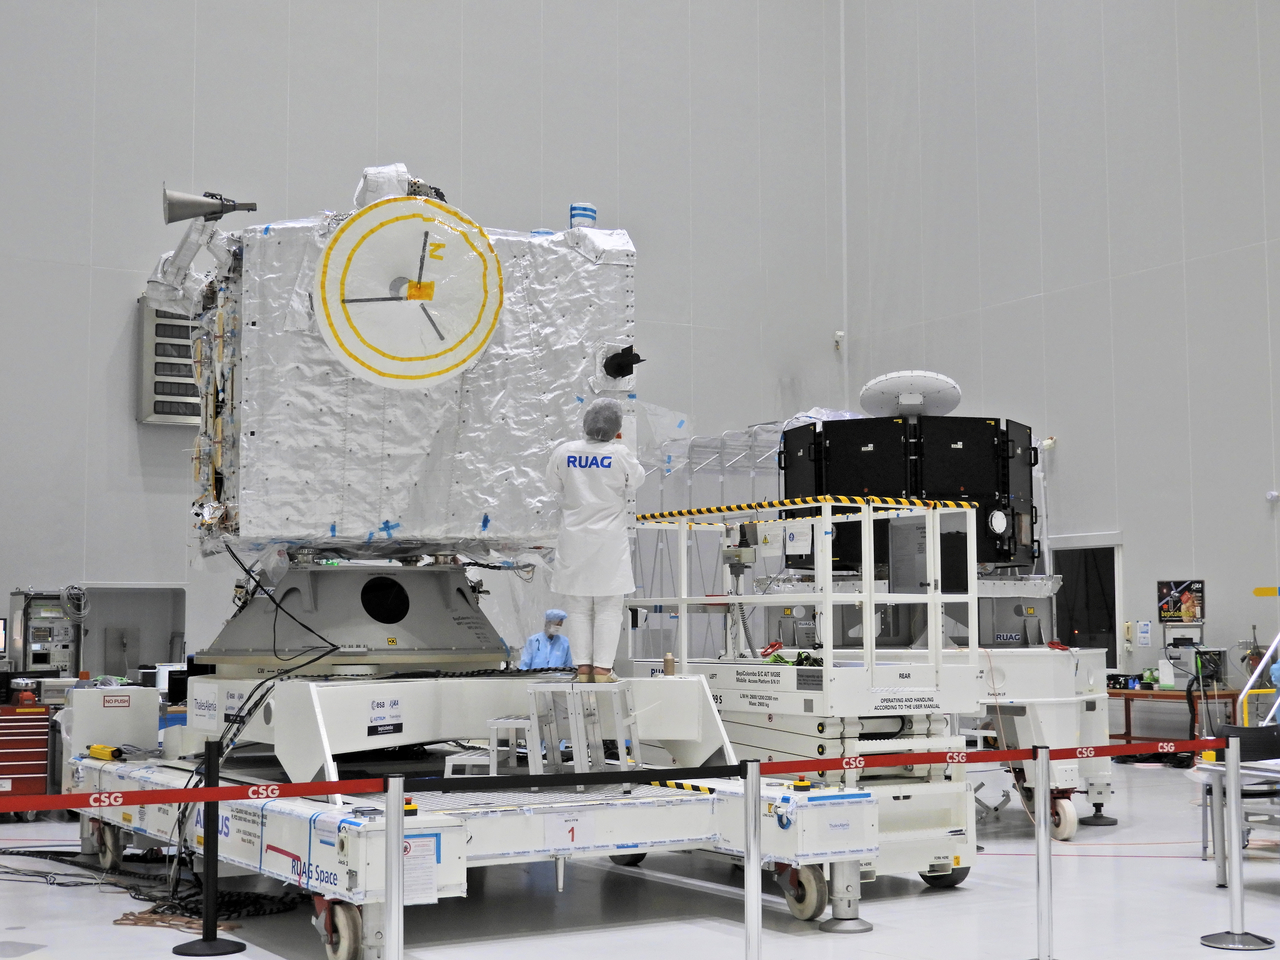 1567213889145-BepiColombo_Sewing_MPO_insulation_blankets_1280.jpg